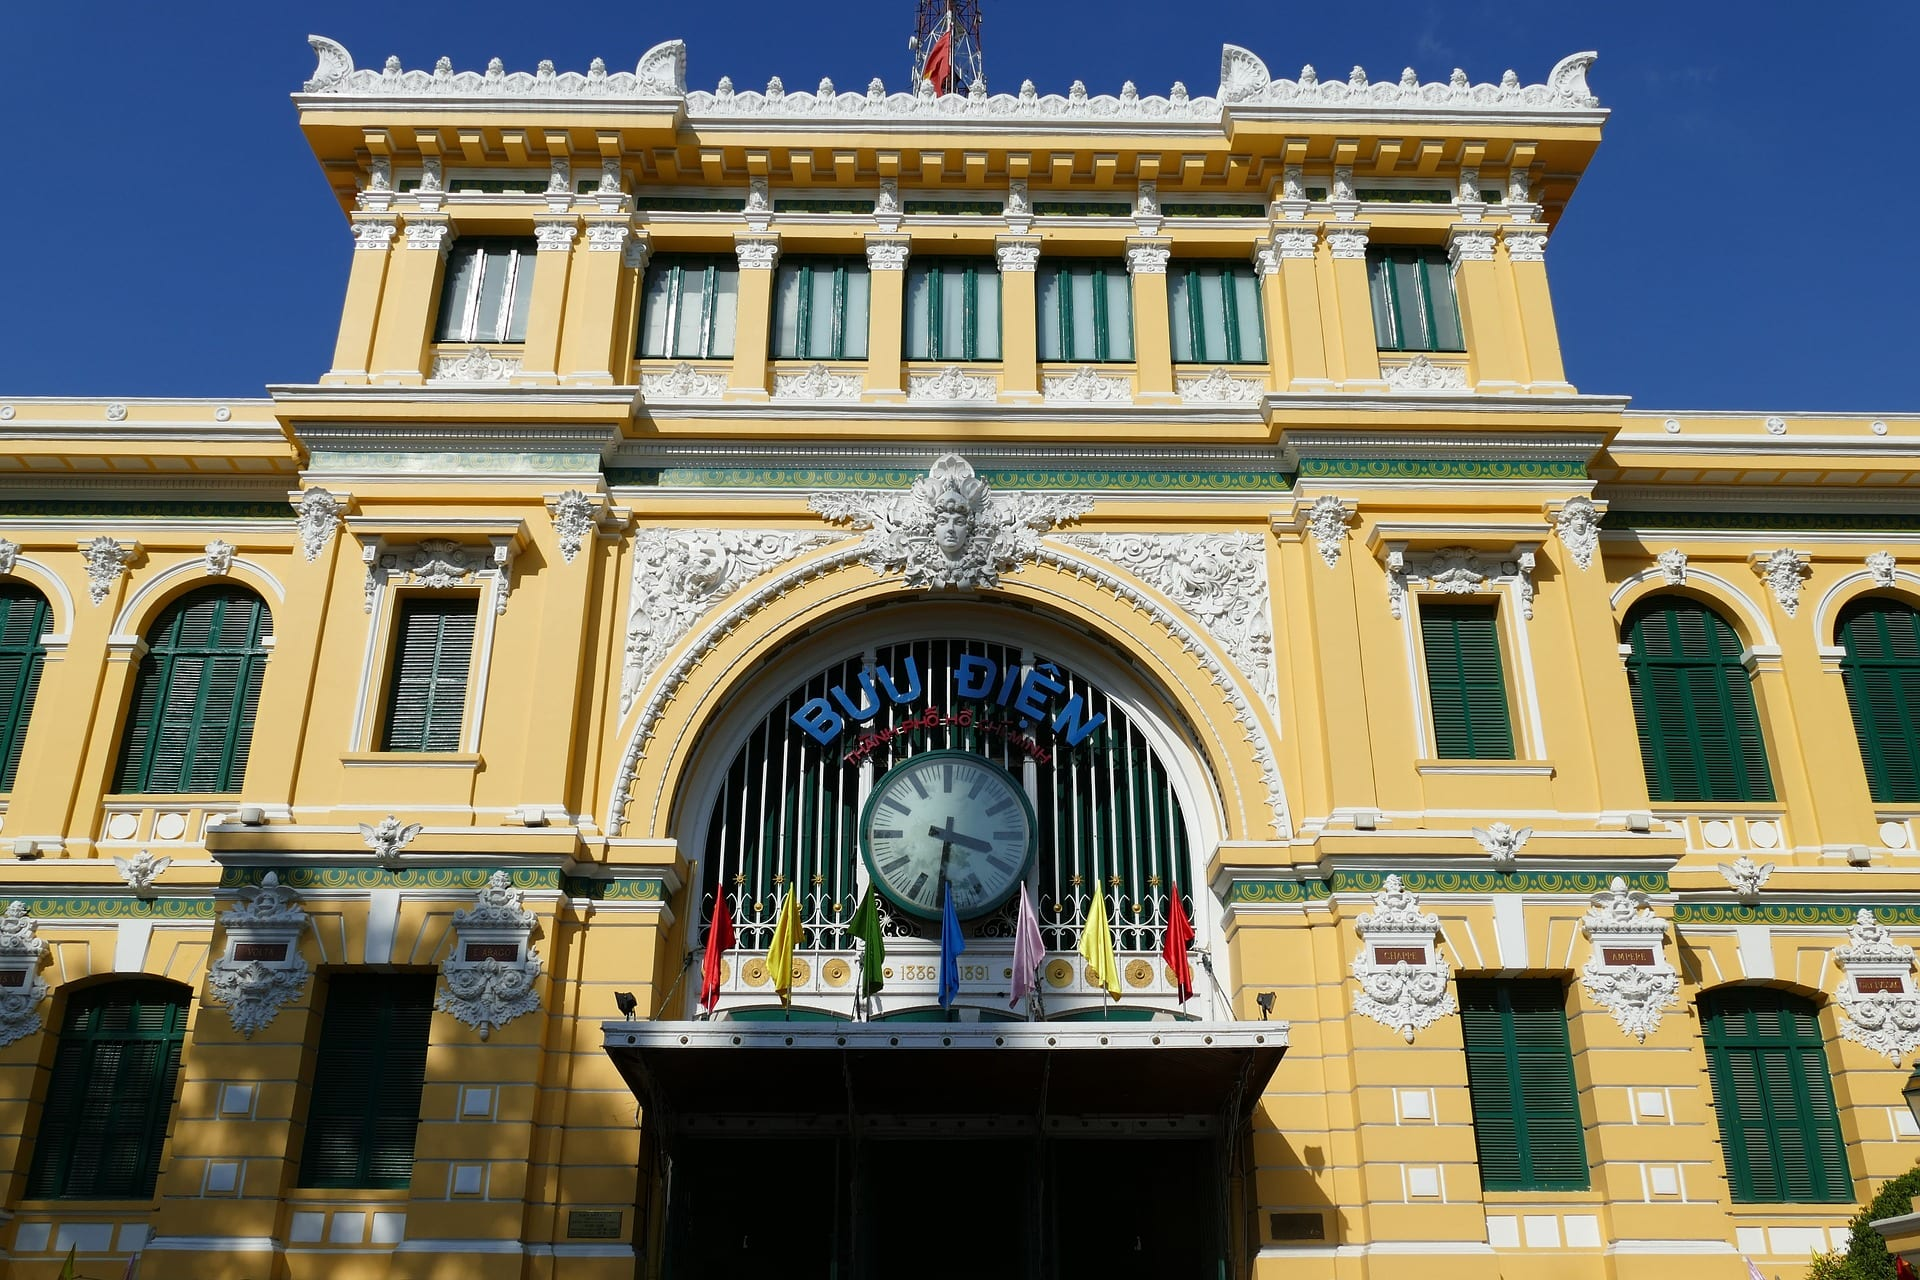 The old Post Office is one of the best places to see in Saigon